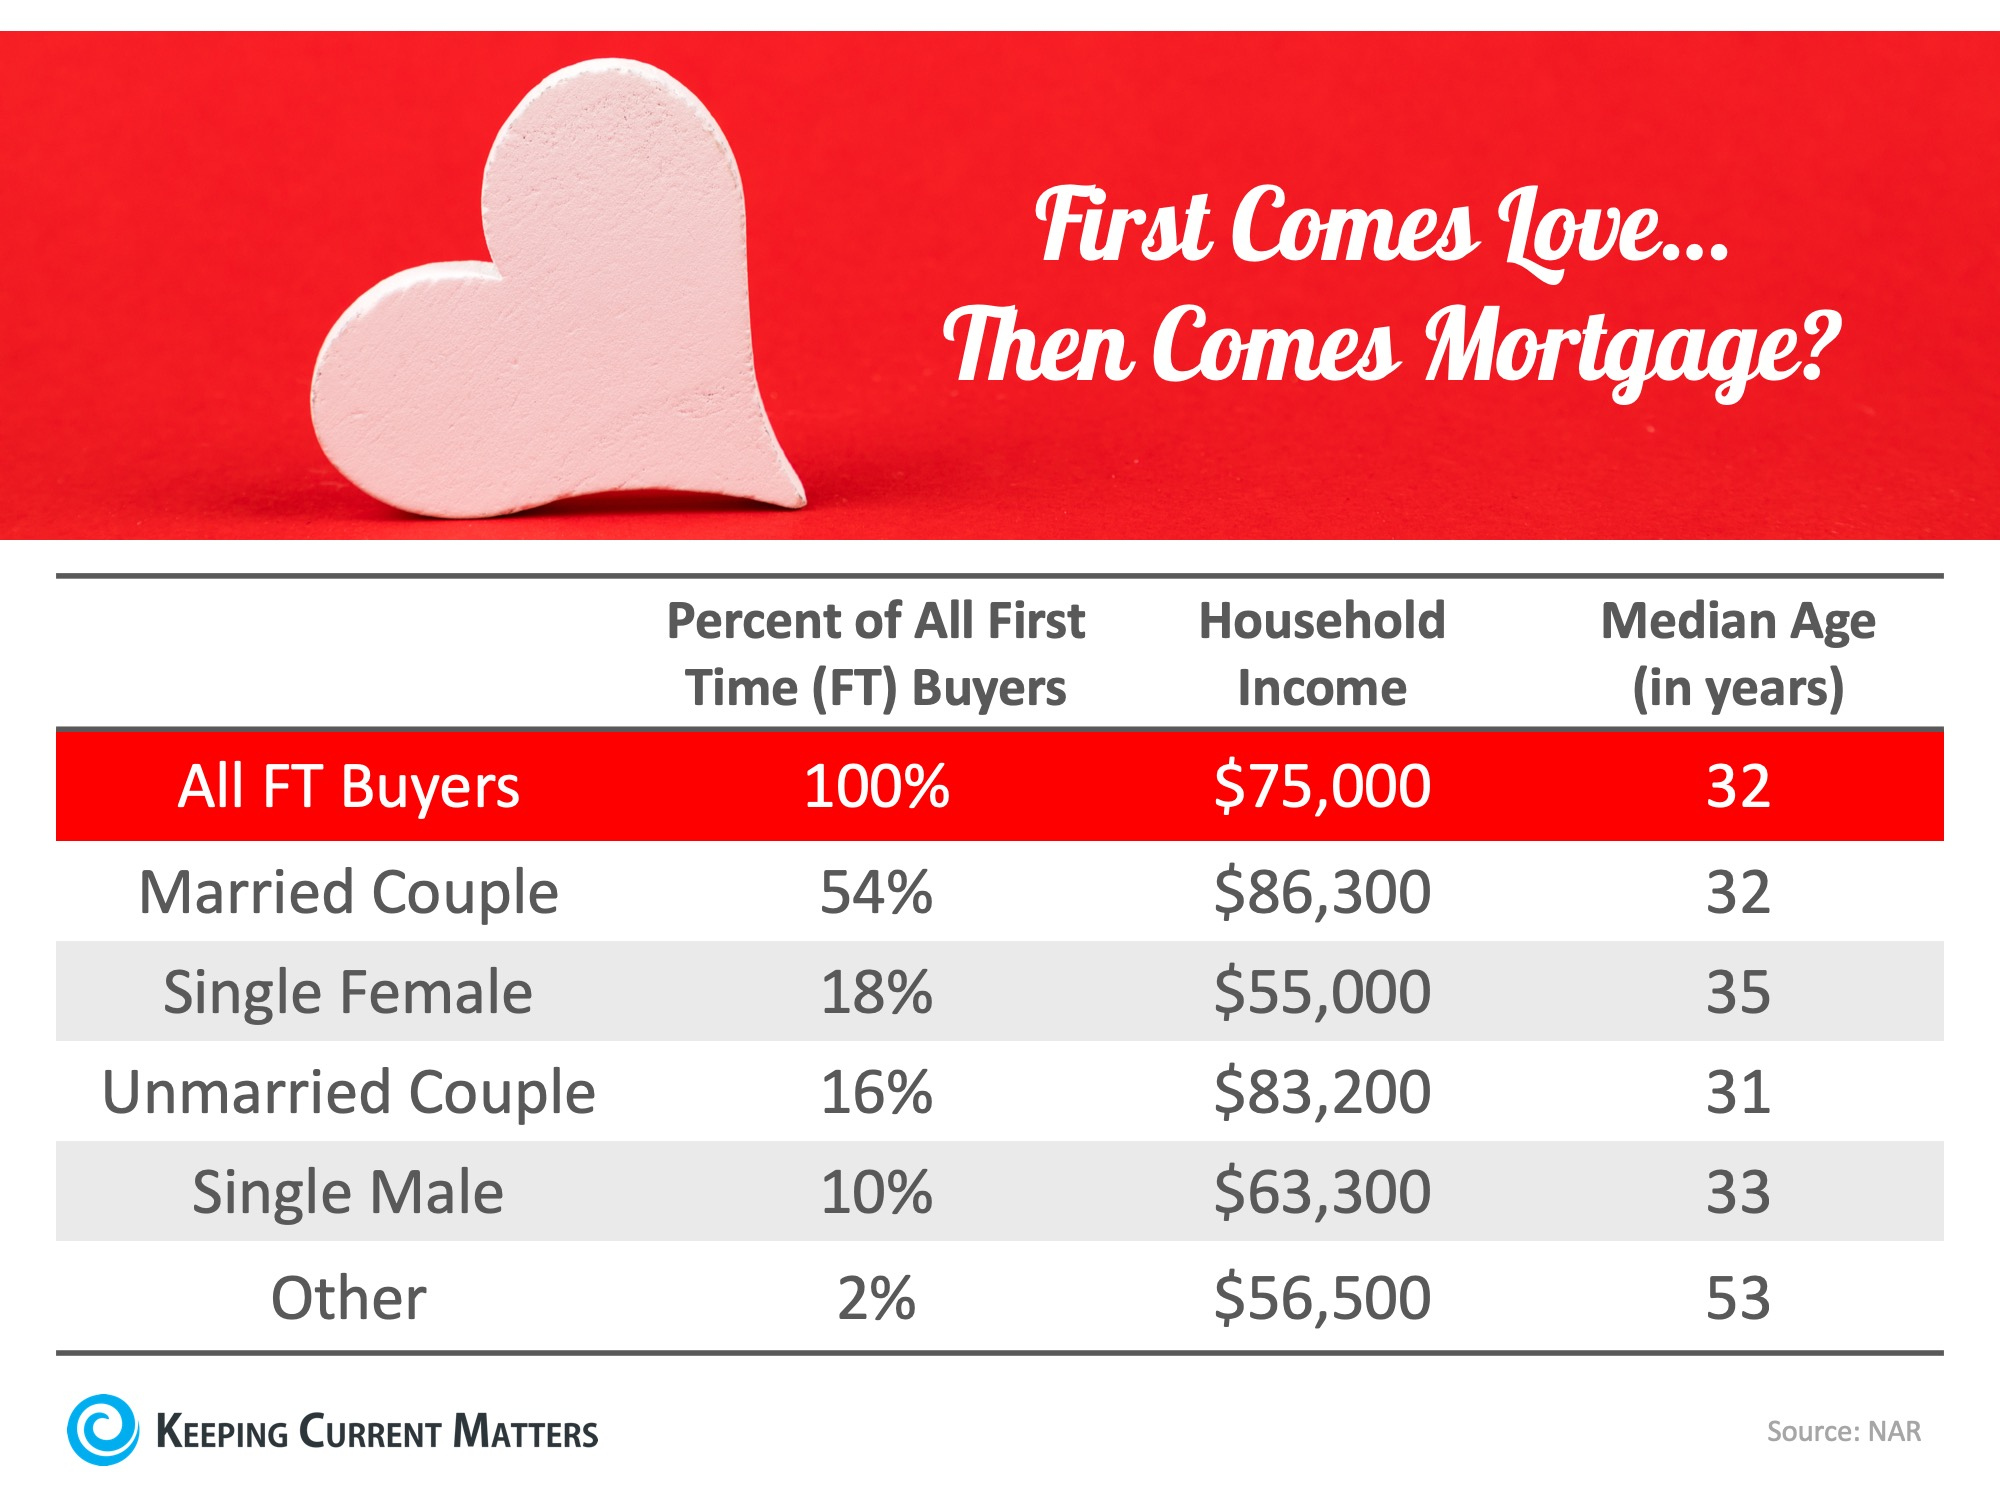 First Comes Love… Then Comes Mortgage? Couples Lead the Way | Keeping Current Matters